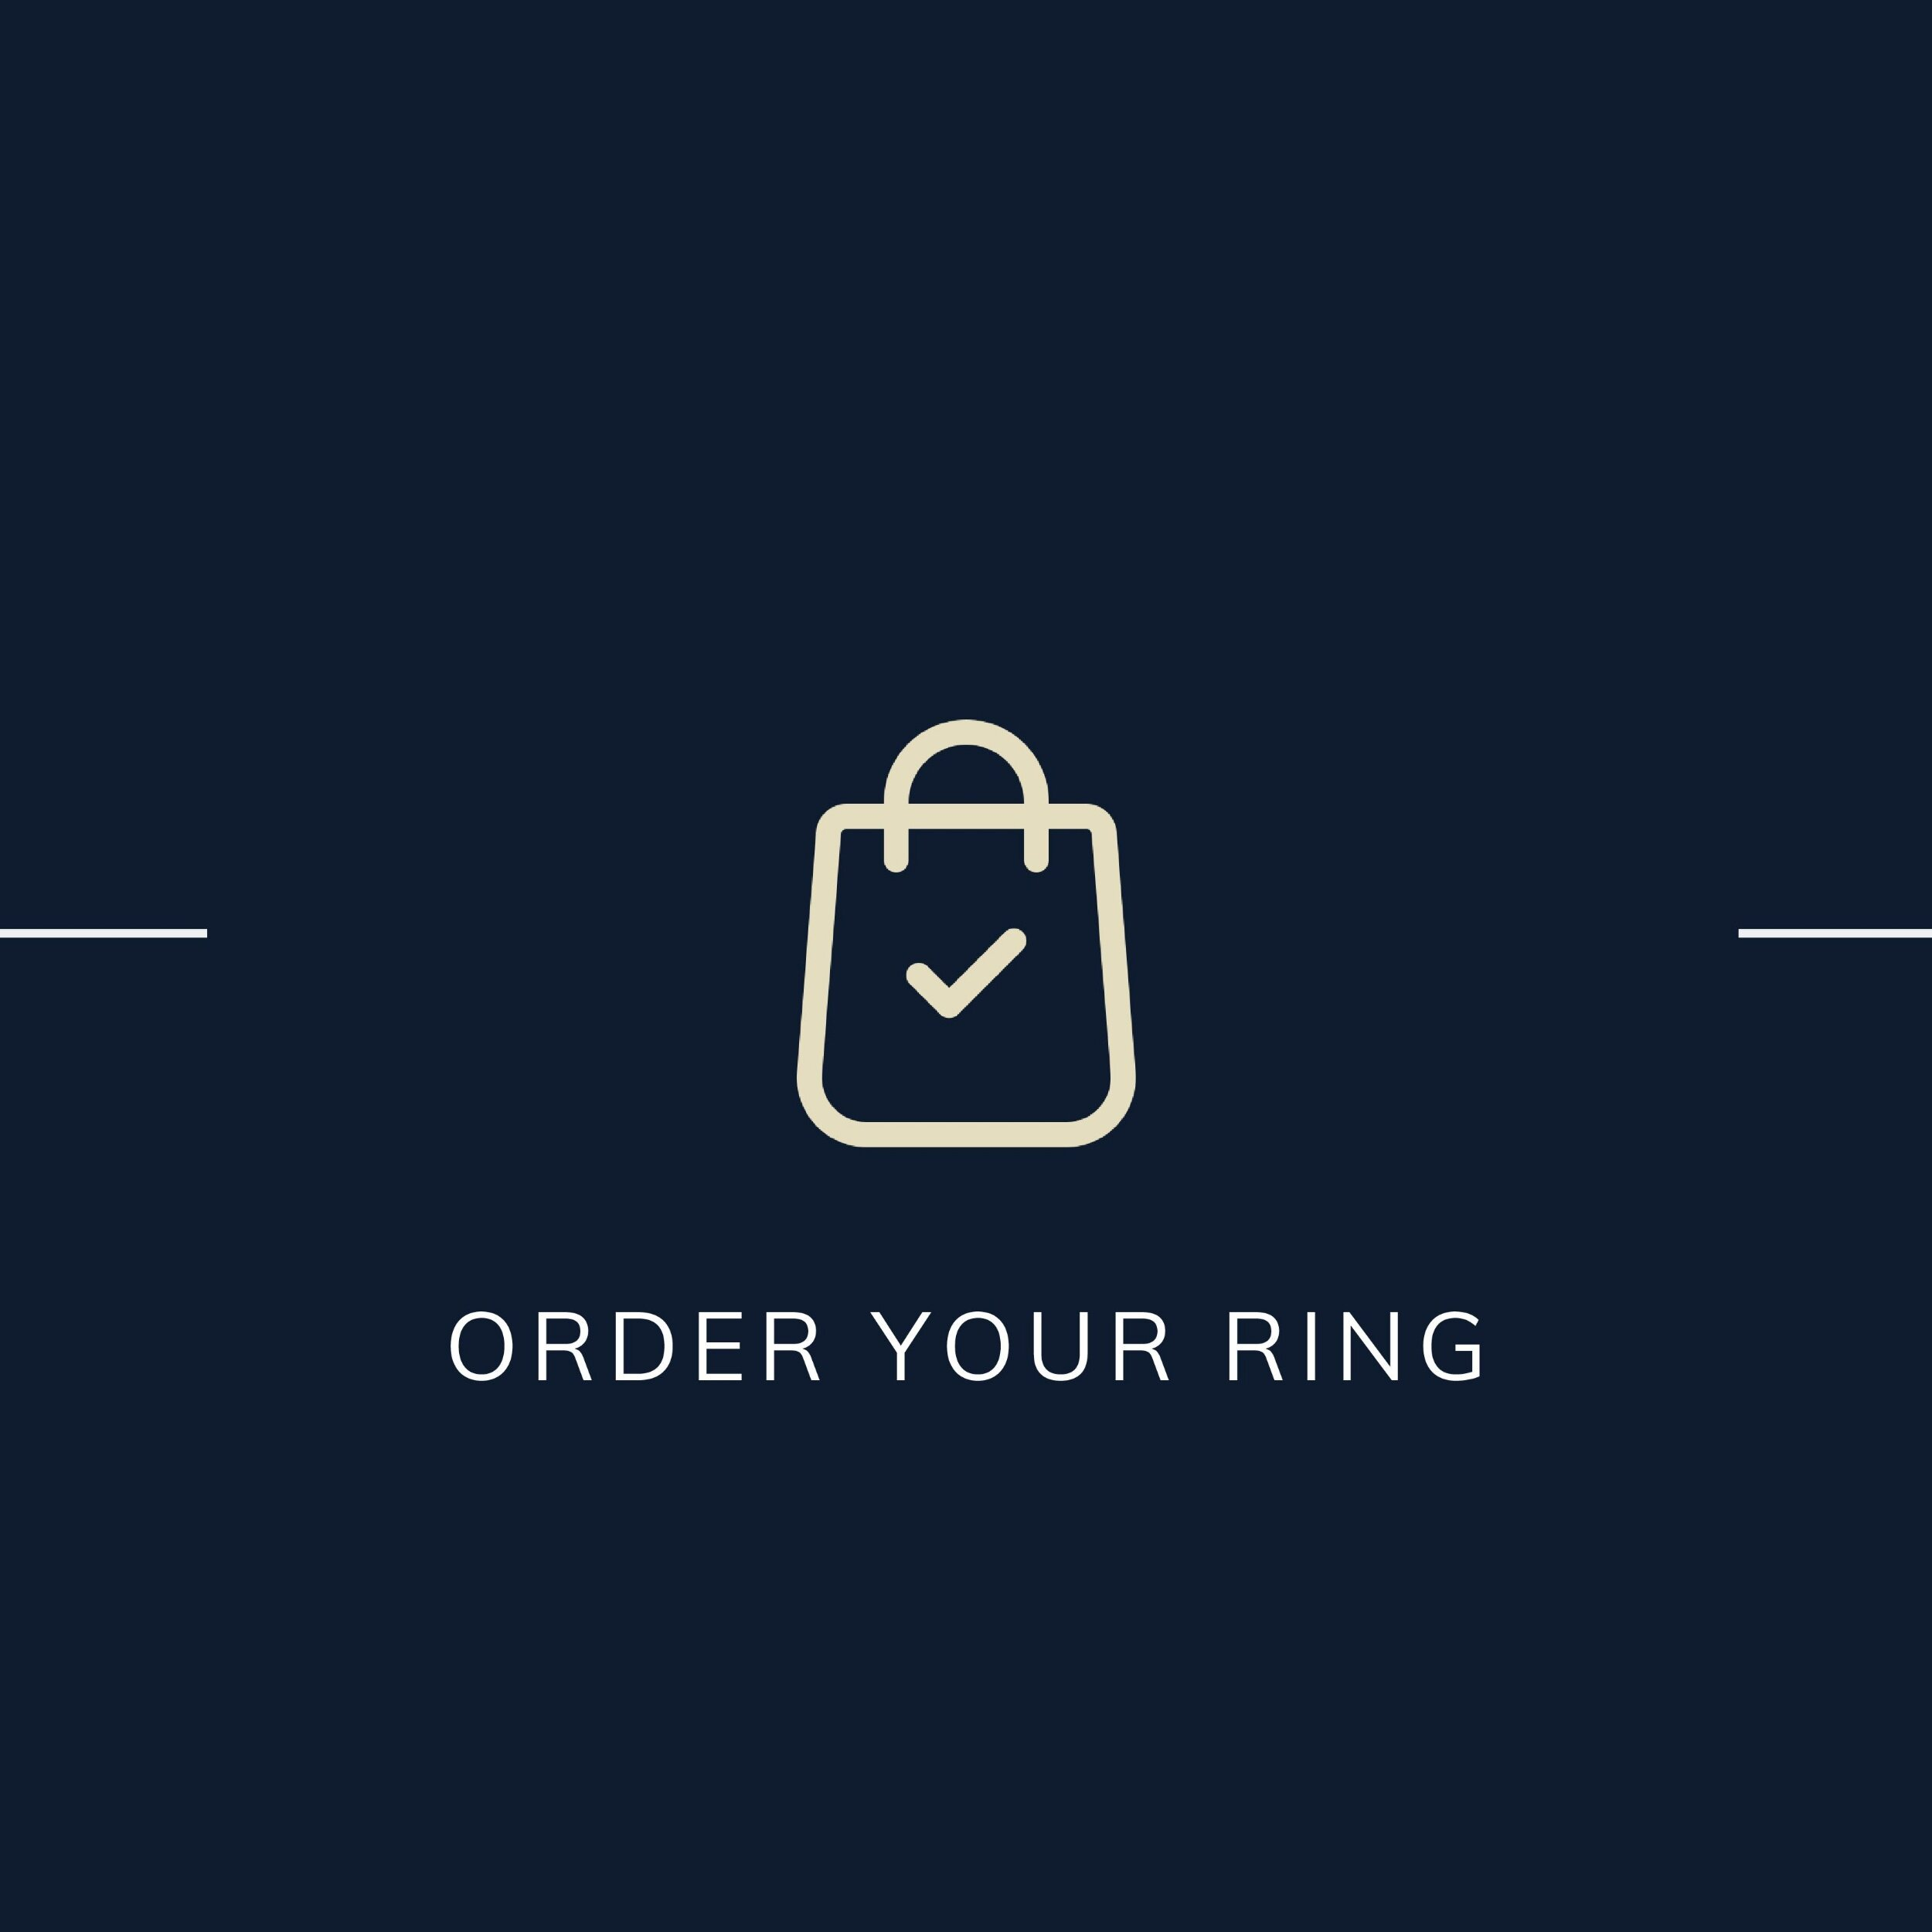 order your ring